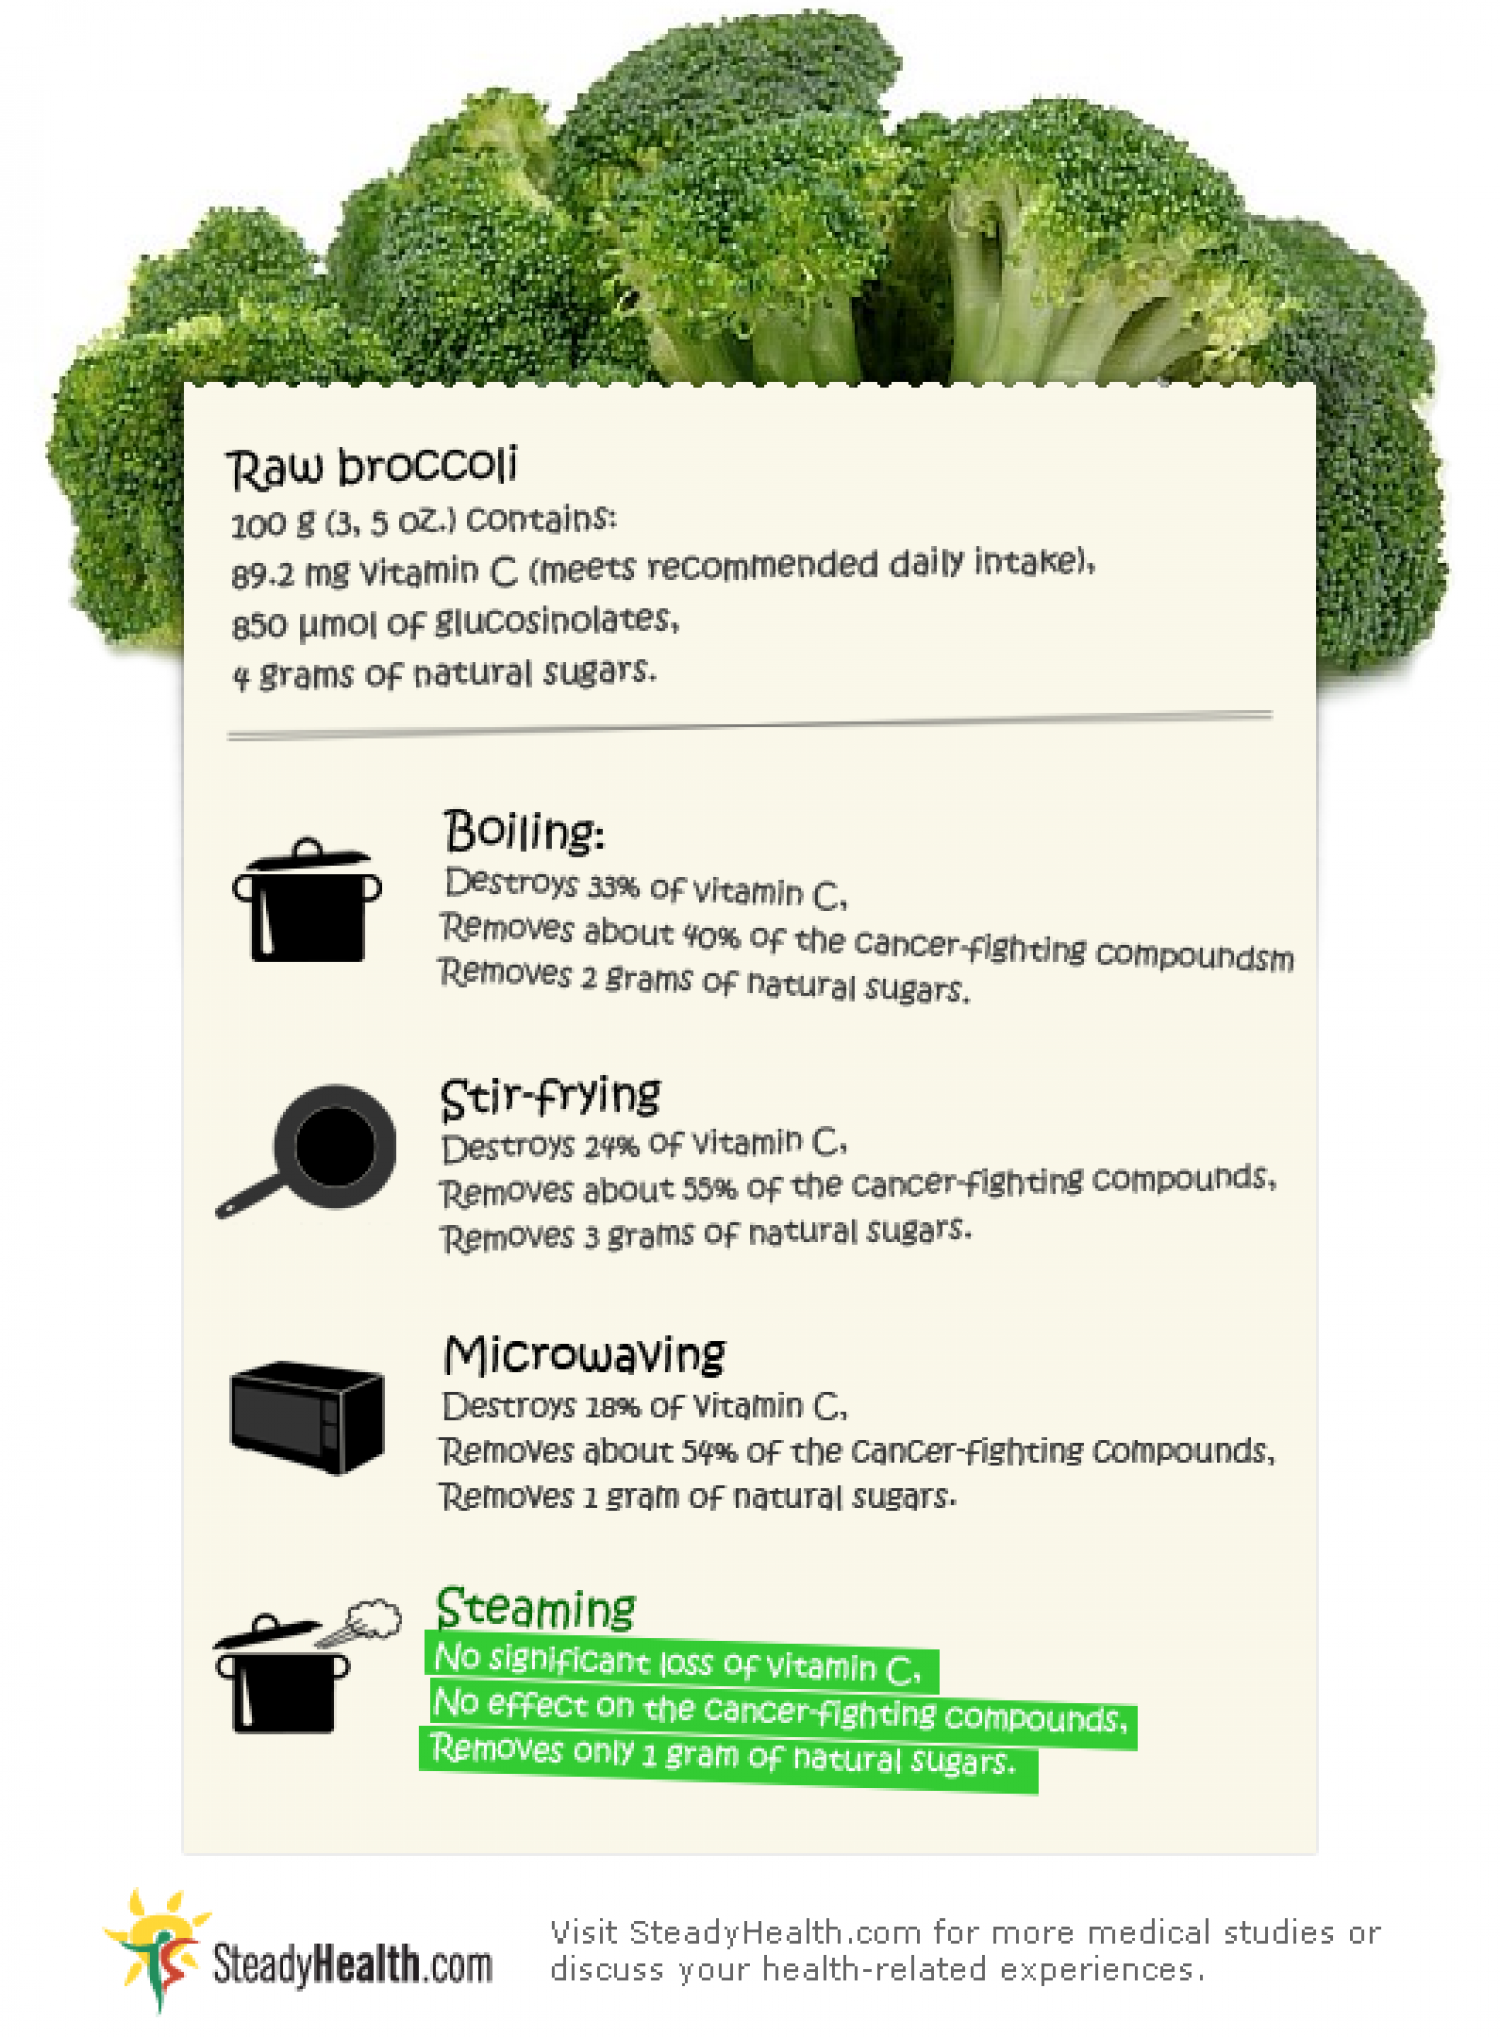 Tips for Preserving Vitamins When Cooking Vegetables